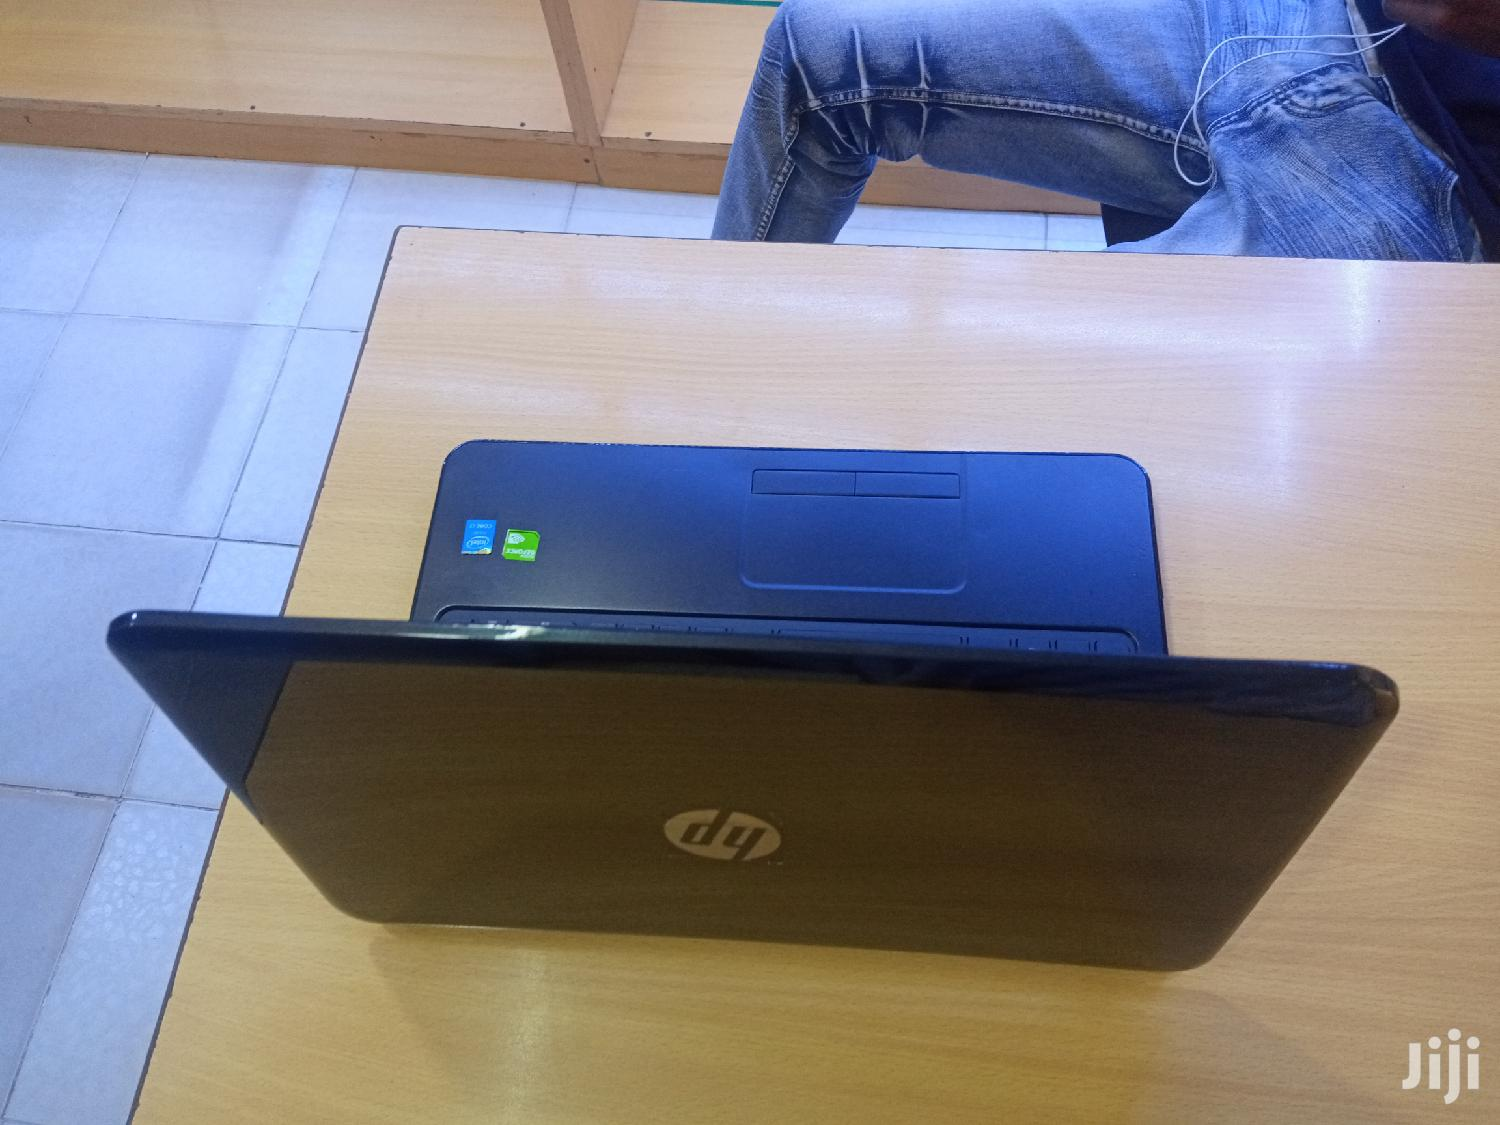 Laptop HP 8GB Intel Core i7 HDD 1T | Laptops & Computers for sale in Kampala, Central Region, Uganda